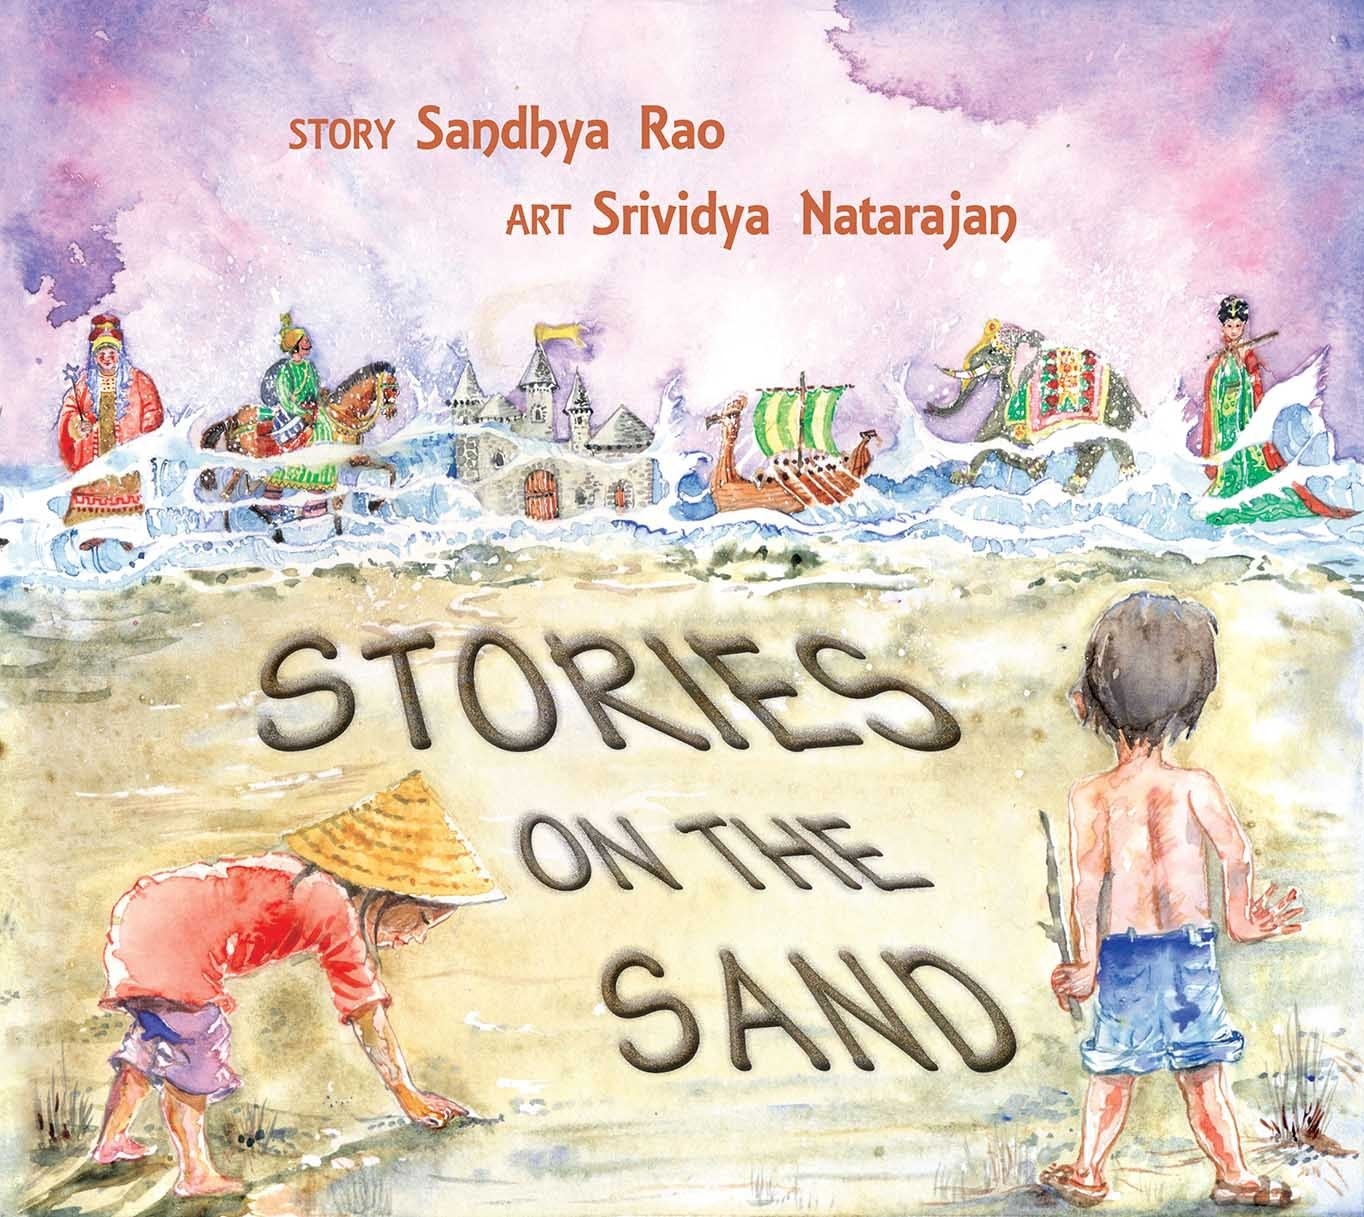 Stories On The Sand (English)